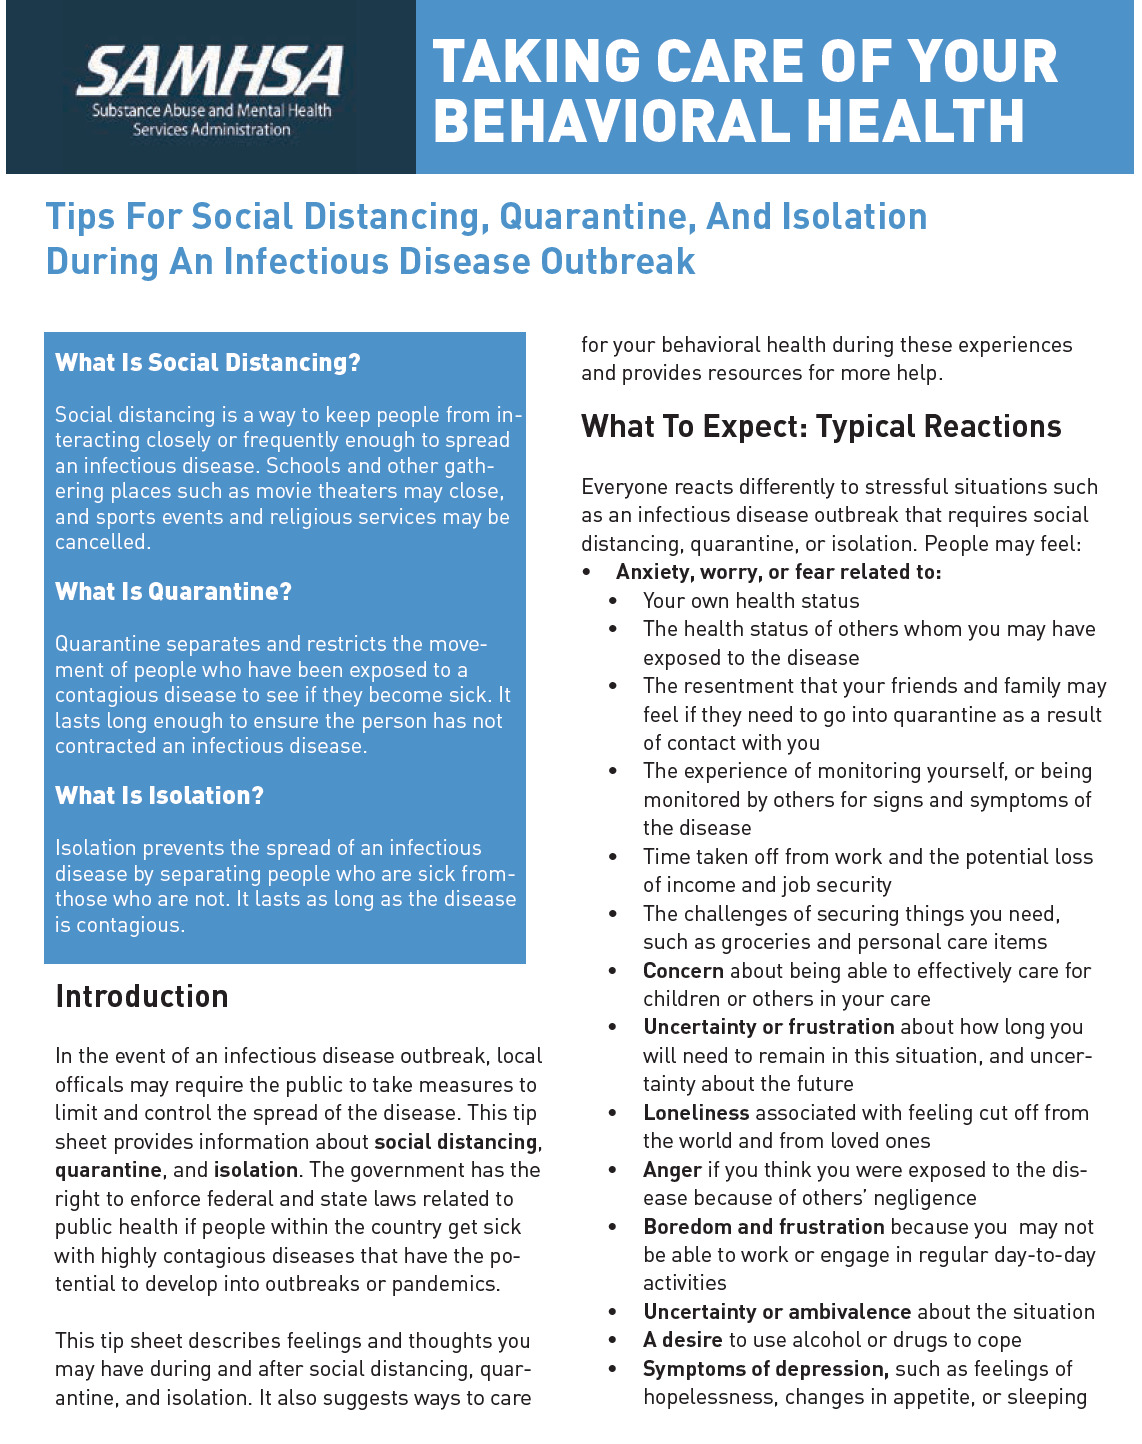 SAMHSA: Taking Care of Your Behavioral Health: Tips for Social Distancing, Quarantine and Isolation